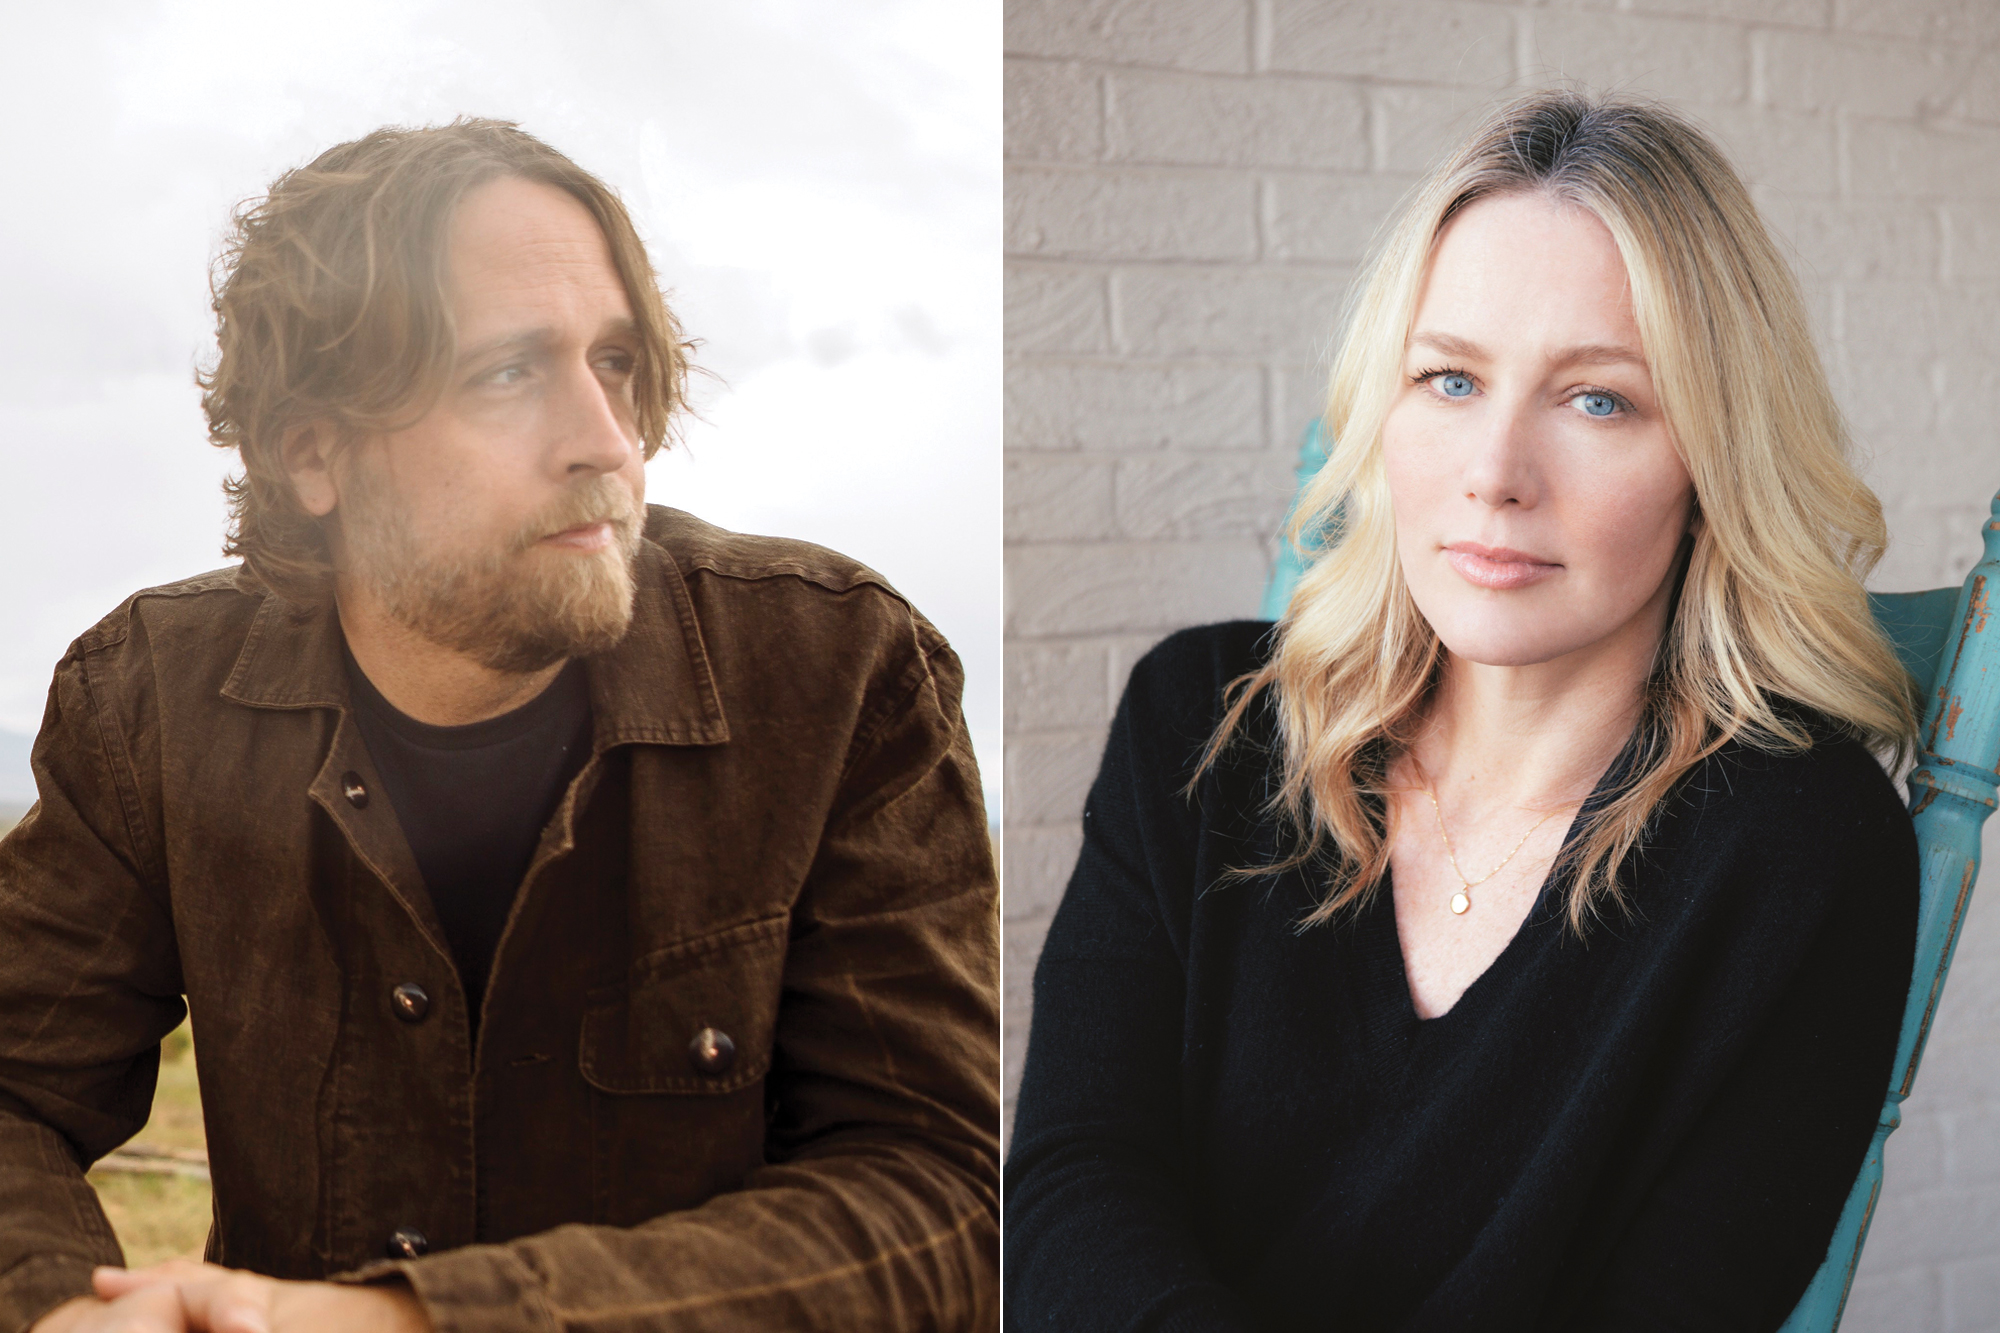 Hayes Carll, Allison Moorer Team Up for Cover of 'That's the Way Love Goes'